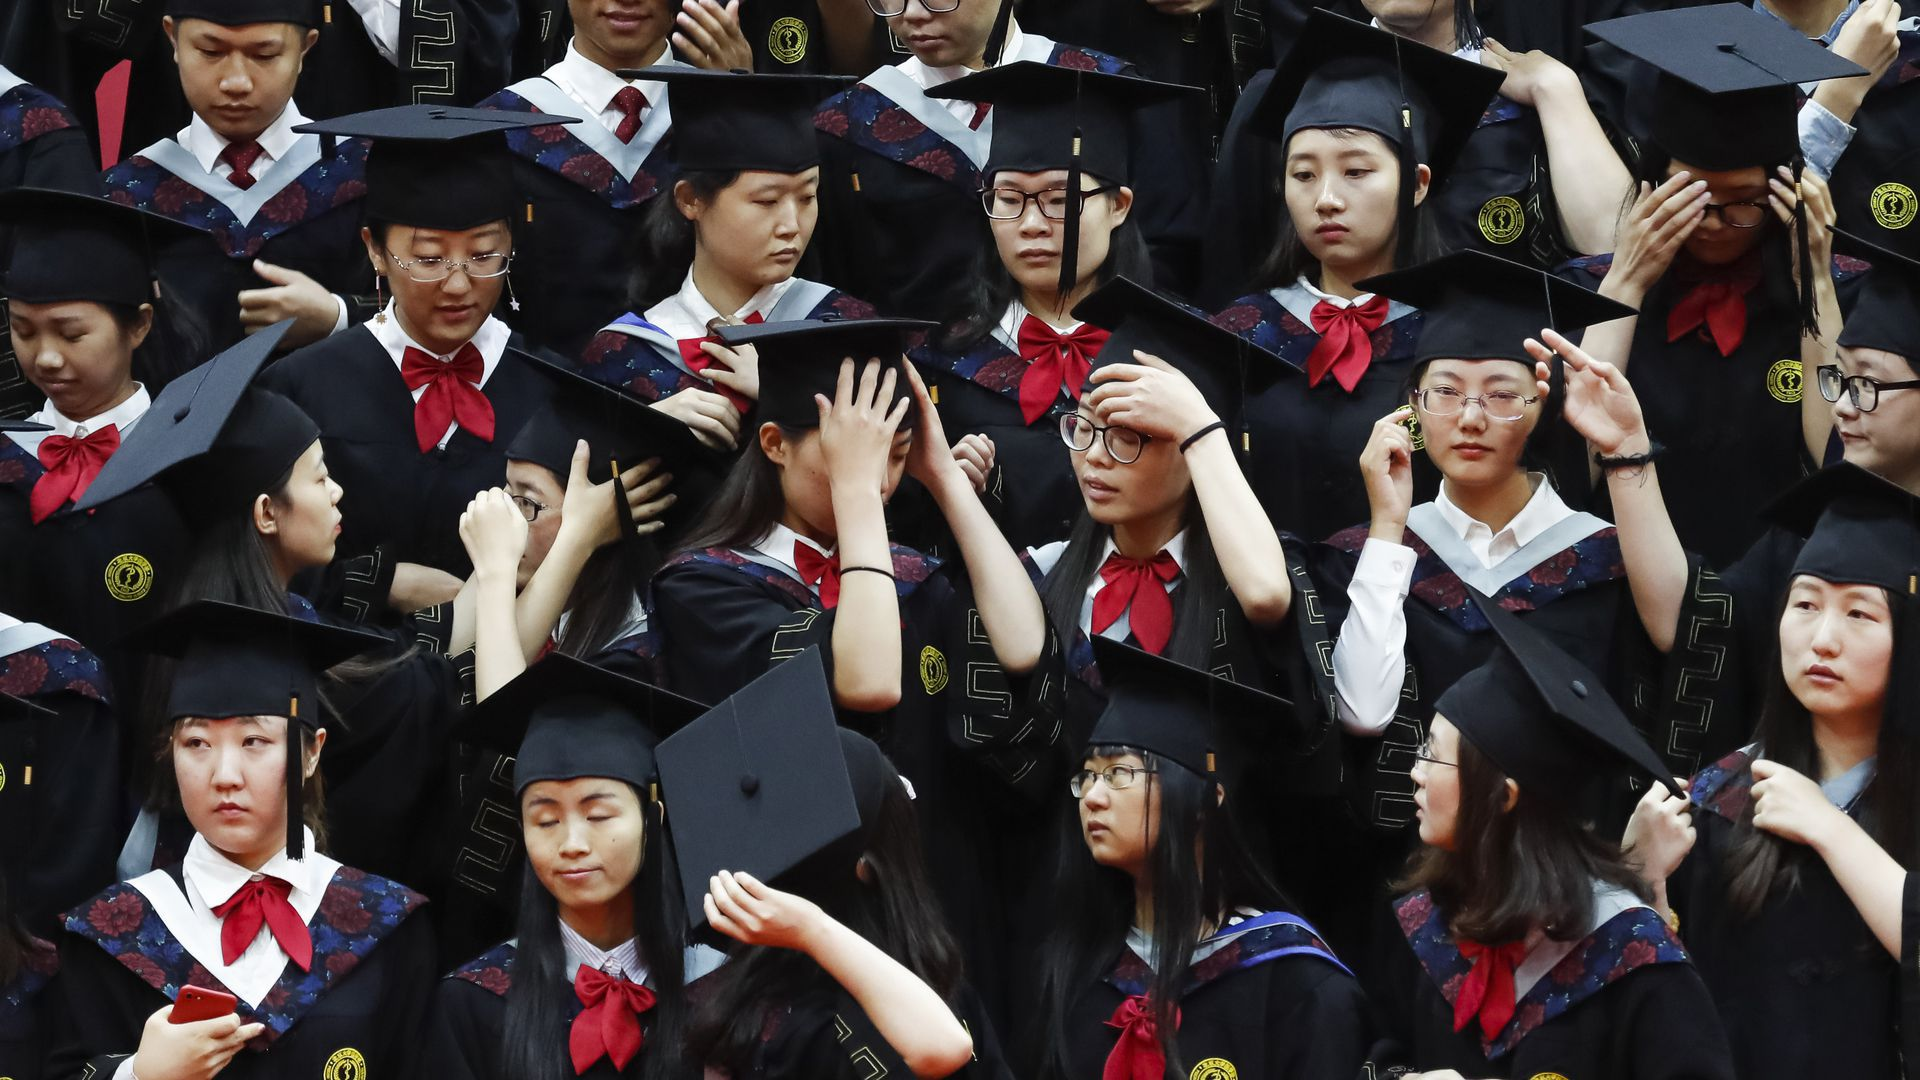 China's campus crackdown intensifies